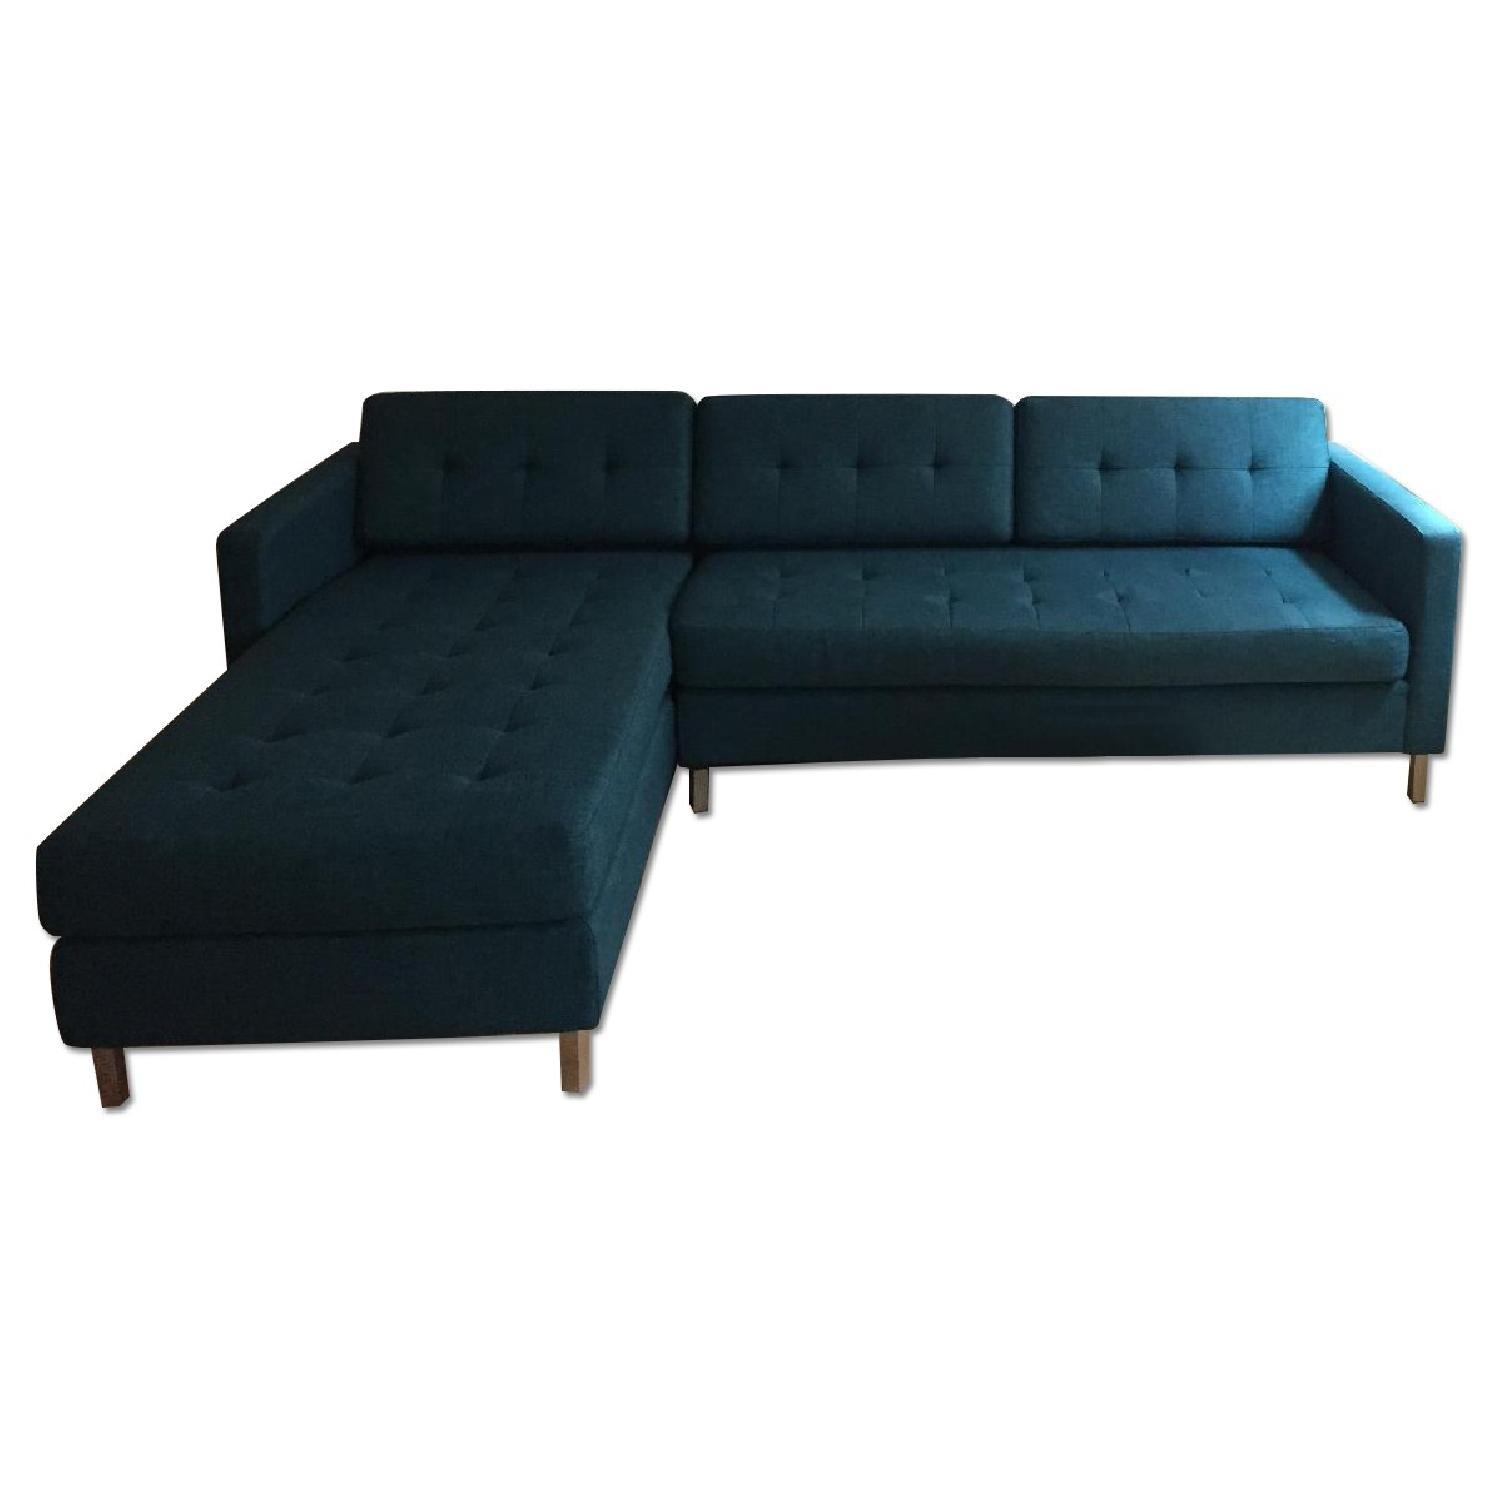 Furniture: West Elm Paige Sofa | West Elm Henry Sectional Reviews Pertaining To West Elm Sectional Sofa (View 20 of 20)